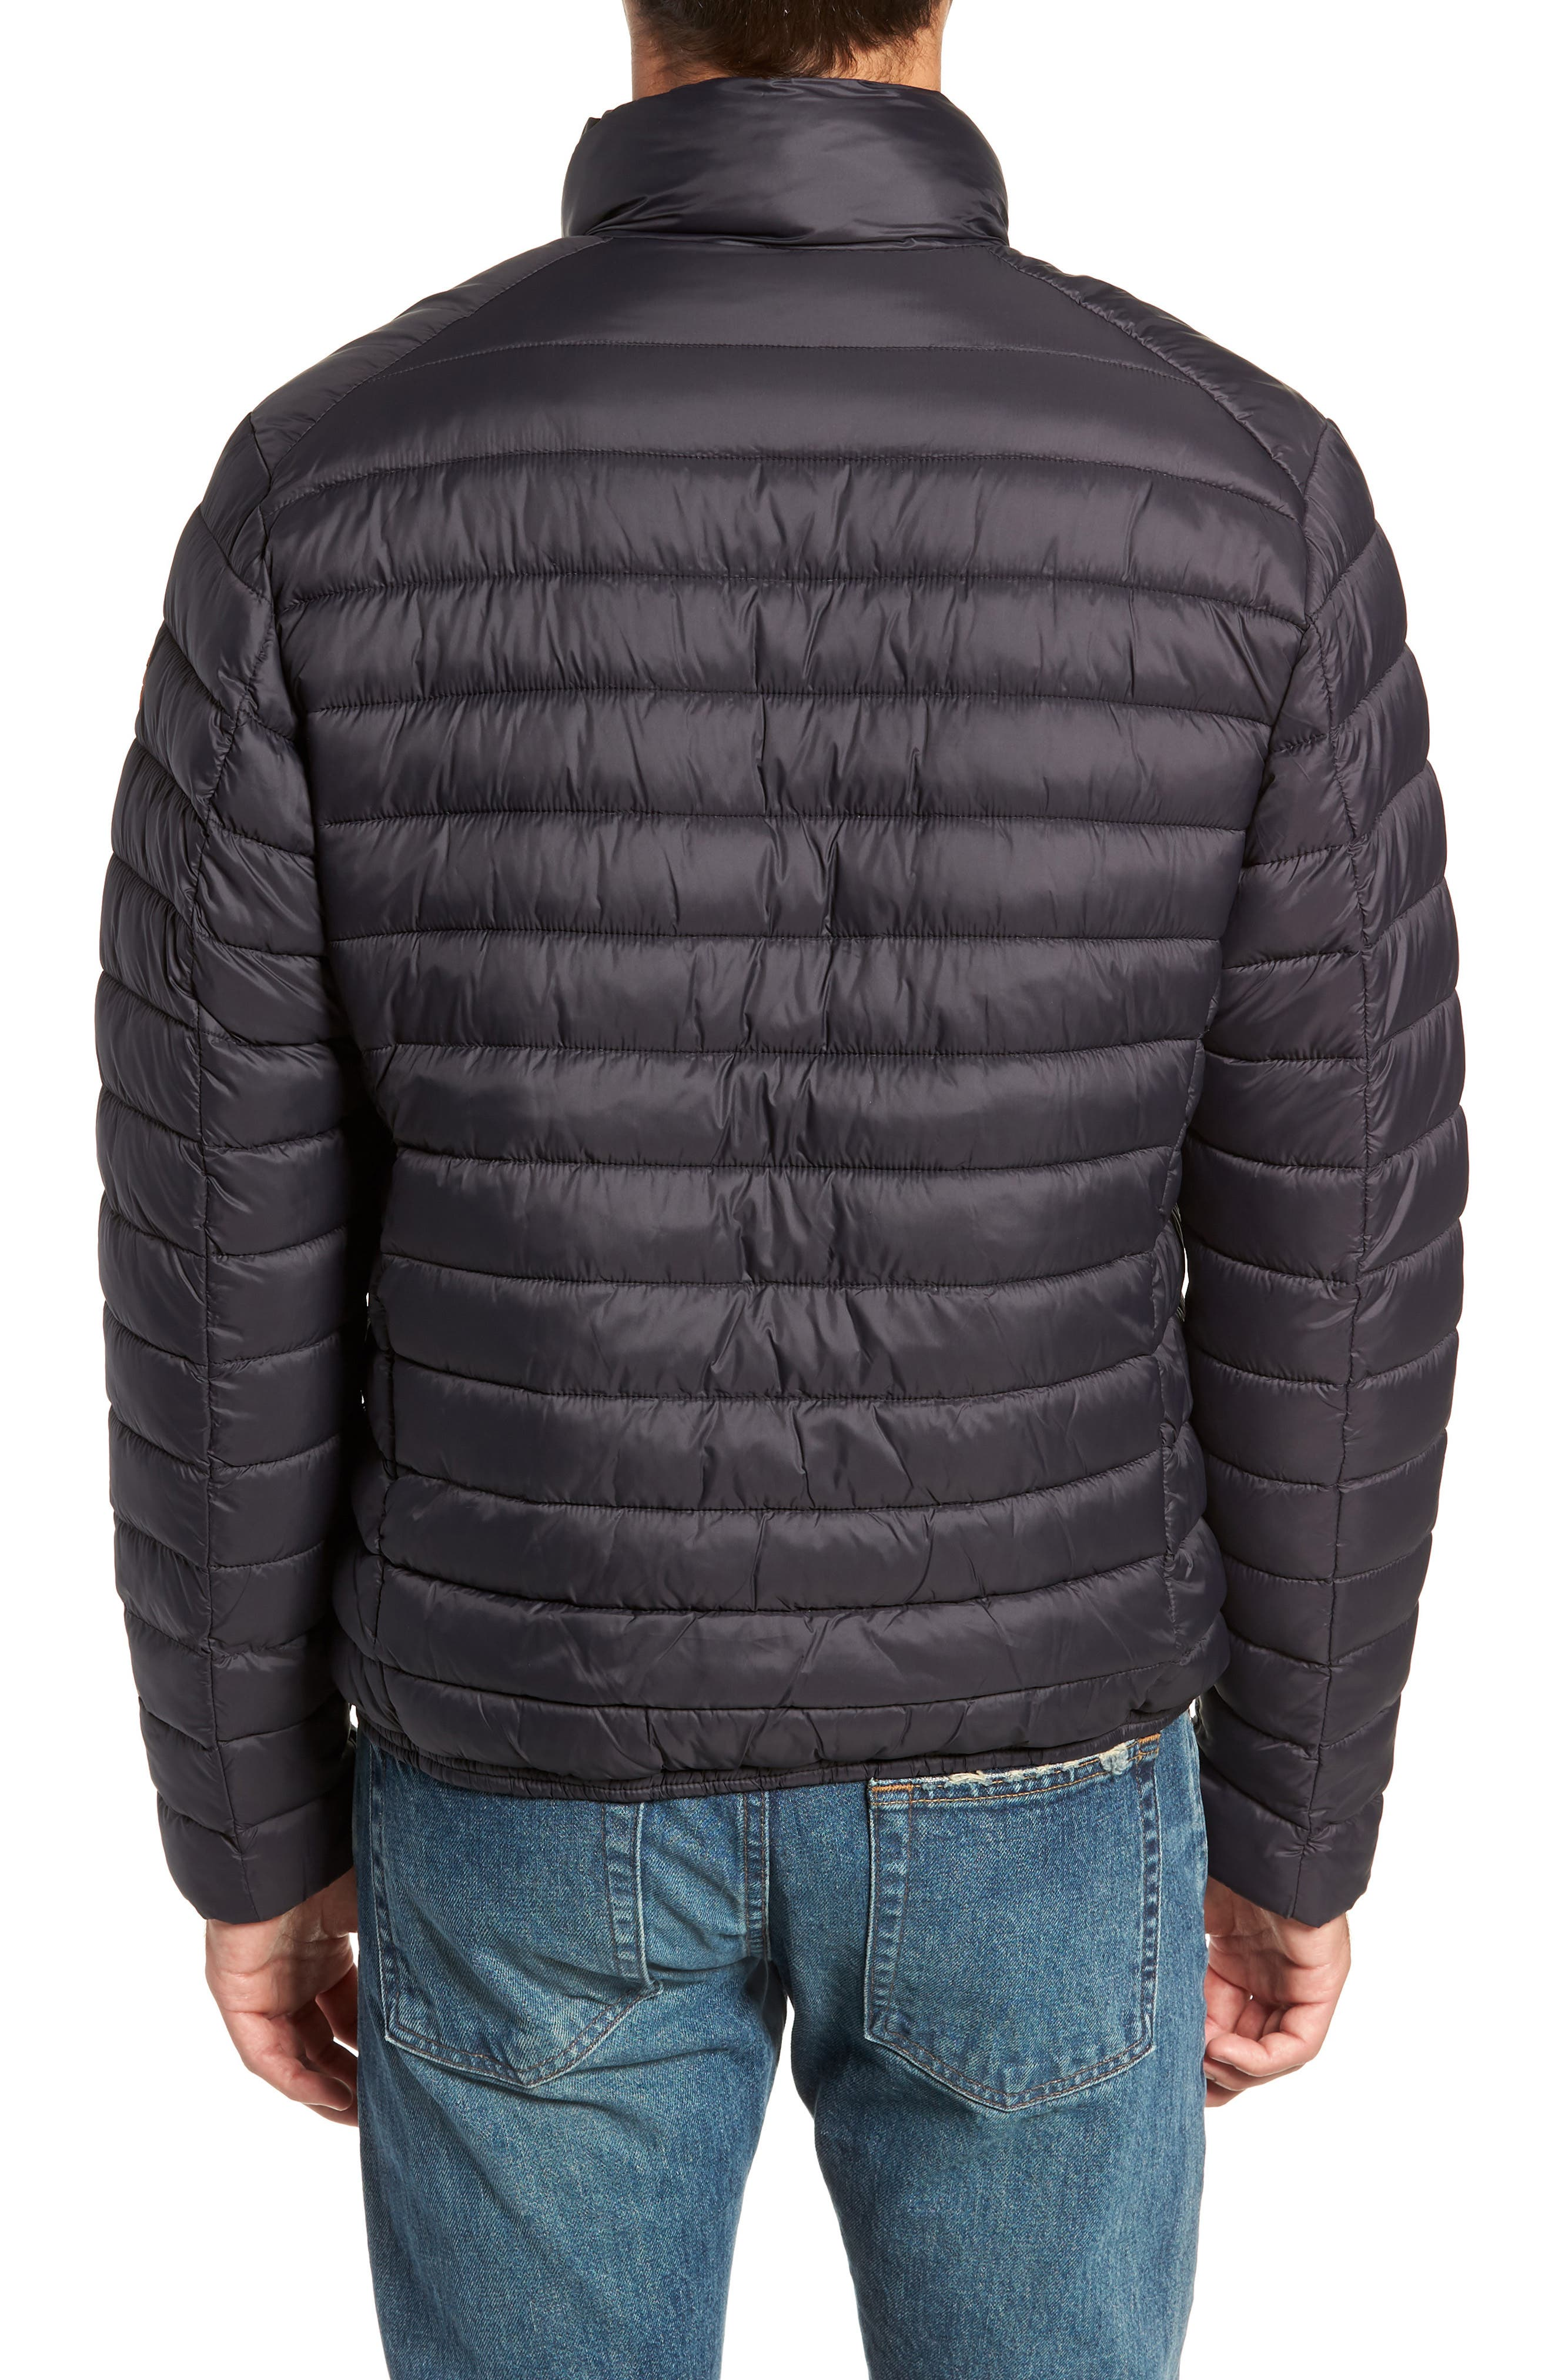 PLUMTECH<sup>®</sup> Insulated Packable Jacket,                             Alternate thumbnail 2, color,                             001